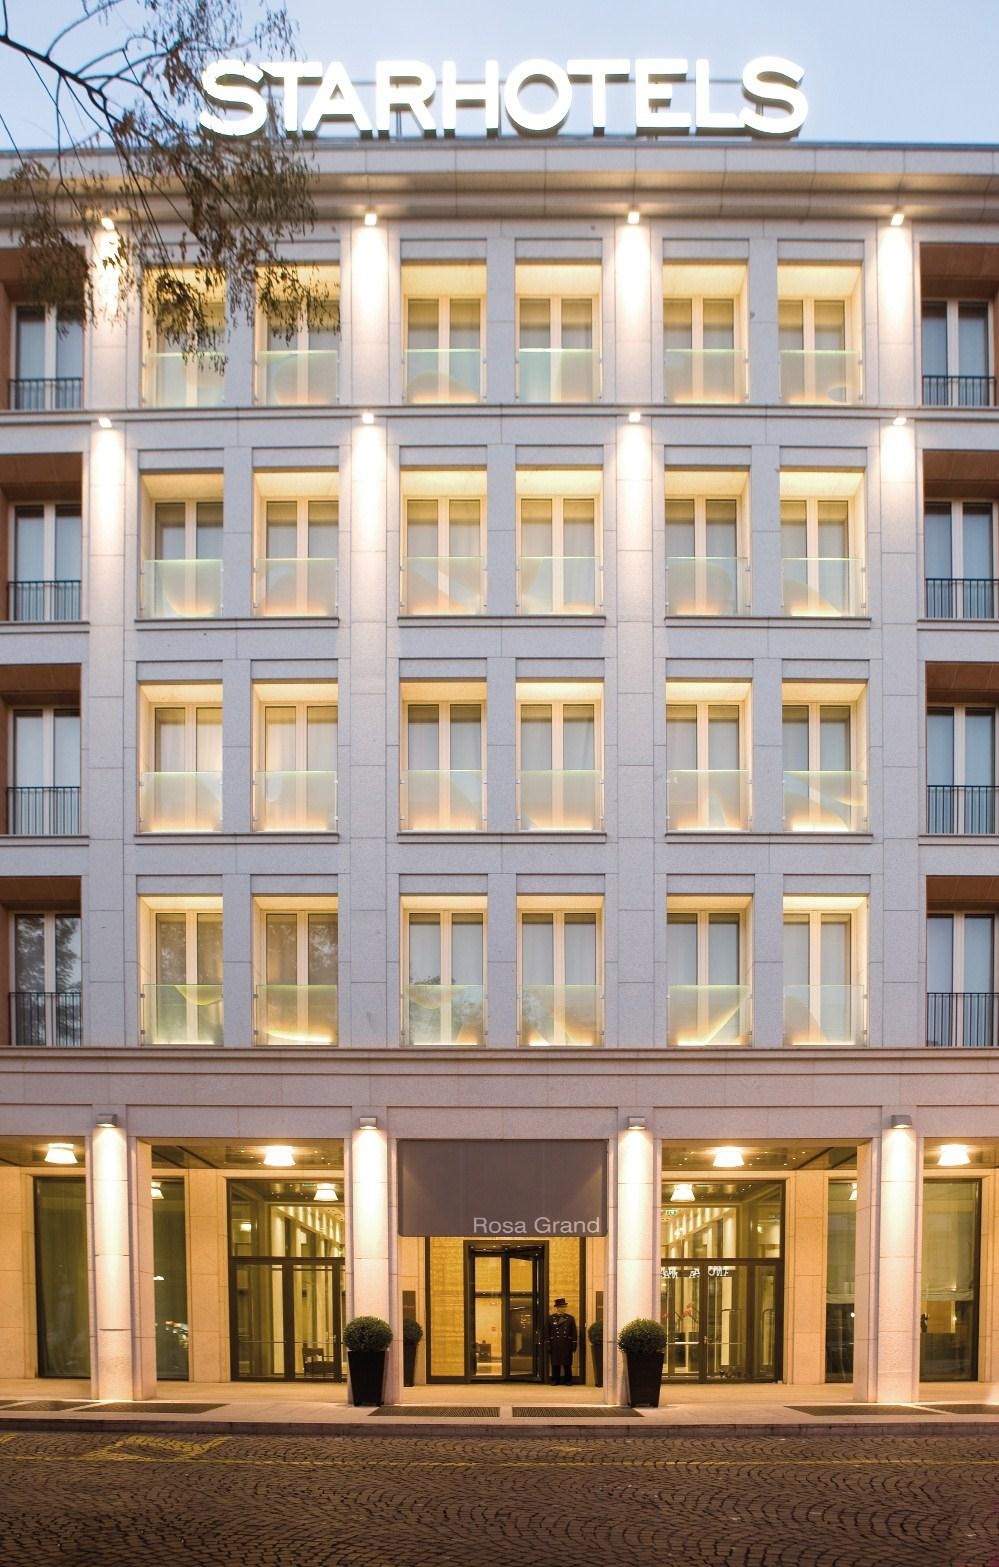 Venues promotions city guides for Grey hotel milano